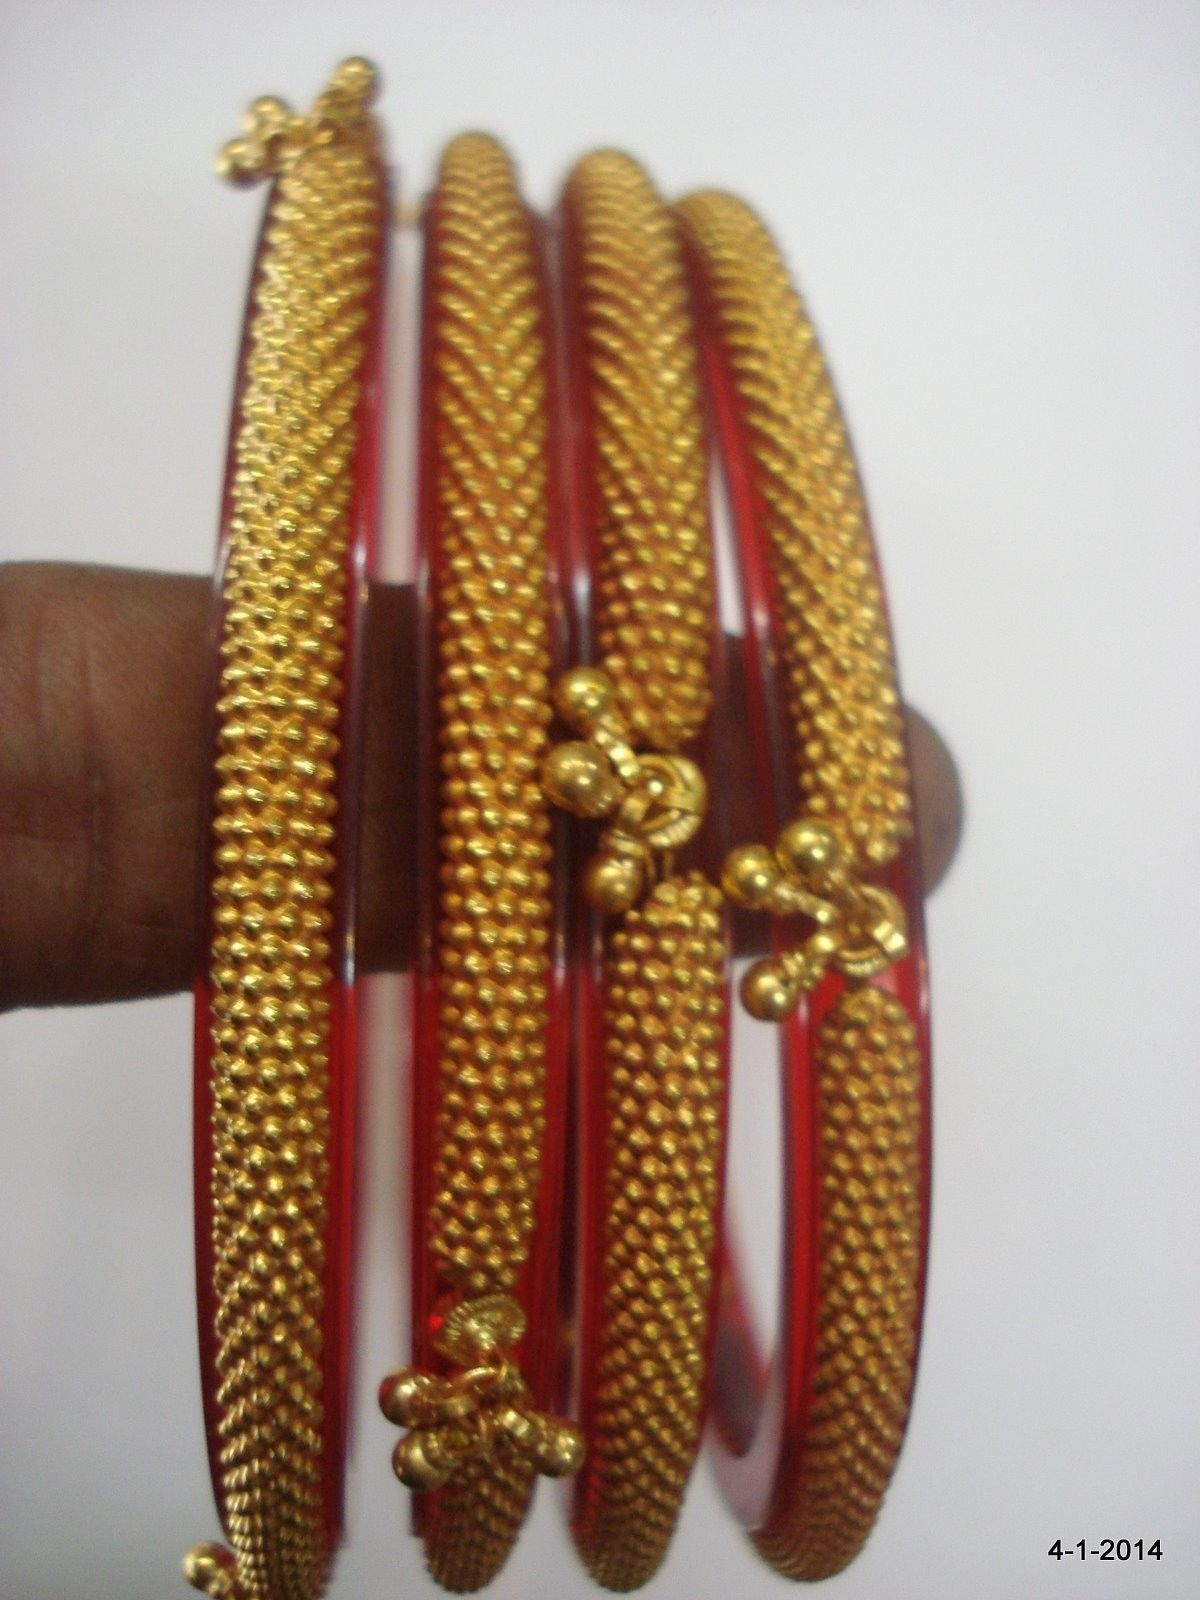 22k gold bracelet bangle set 4pc. handmade tribal jewelry